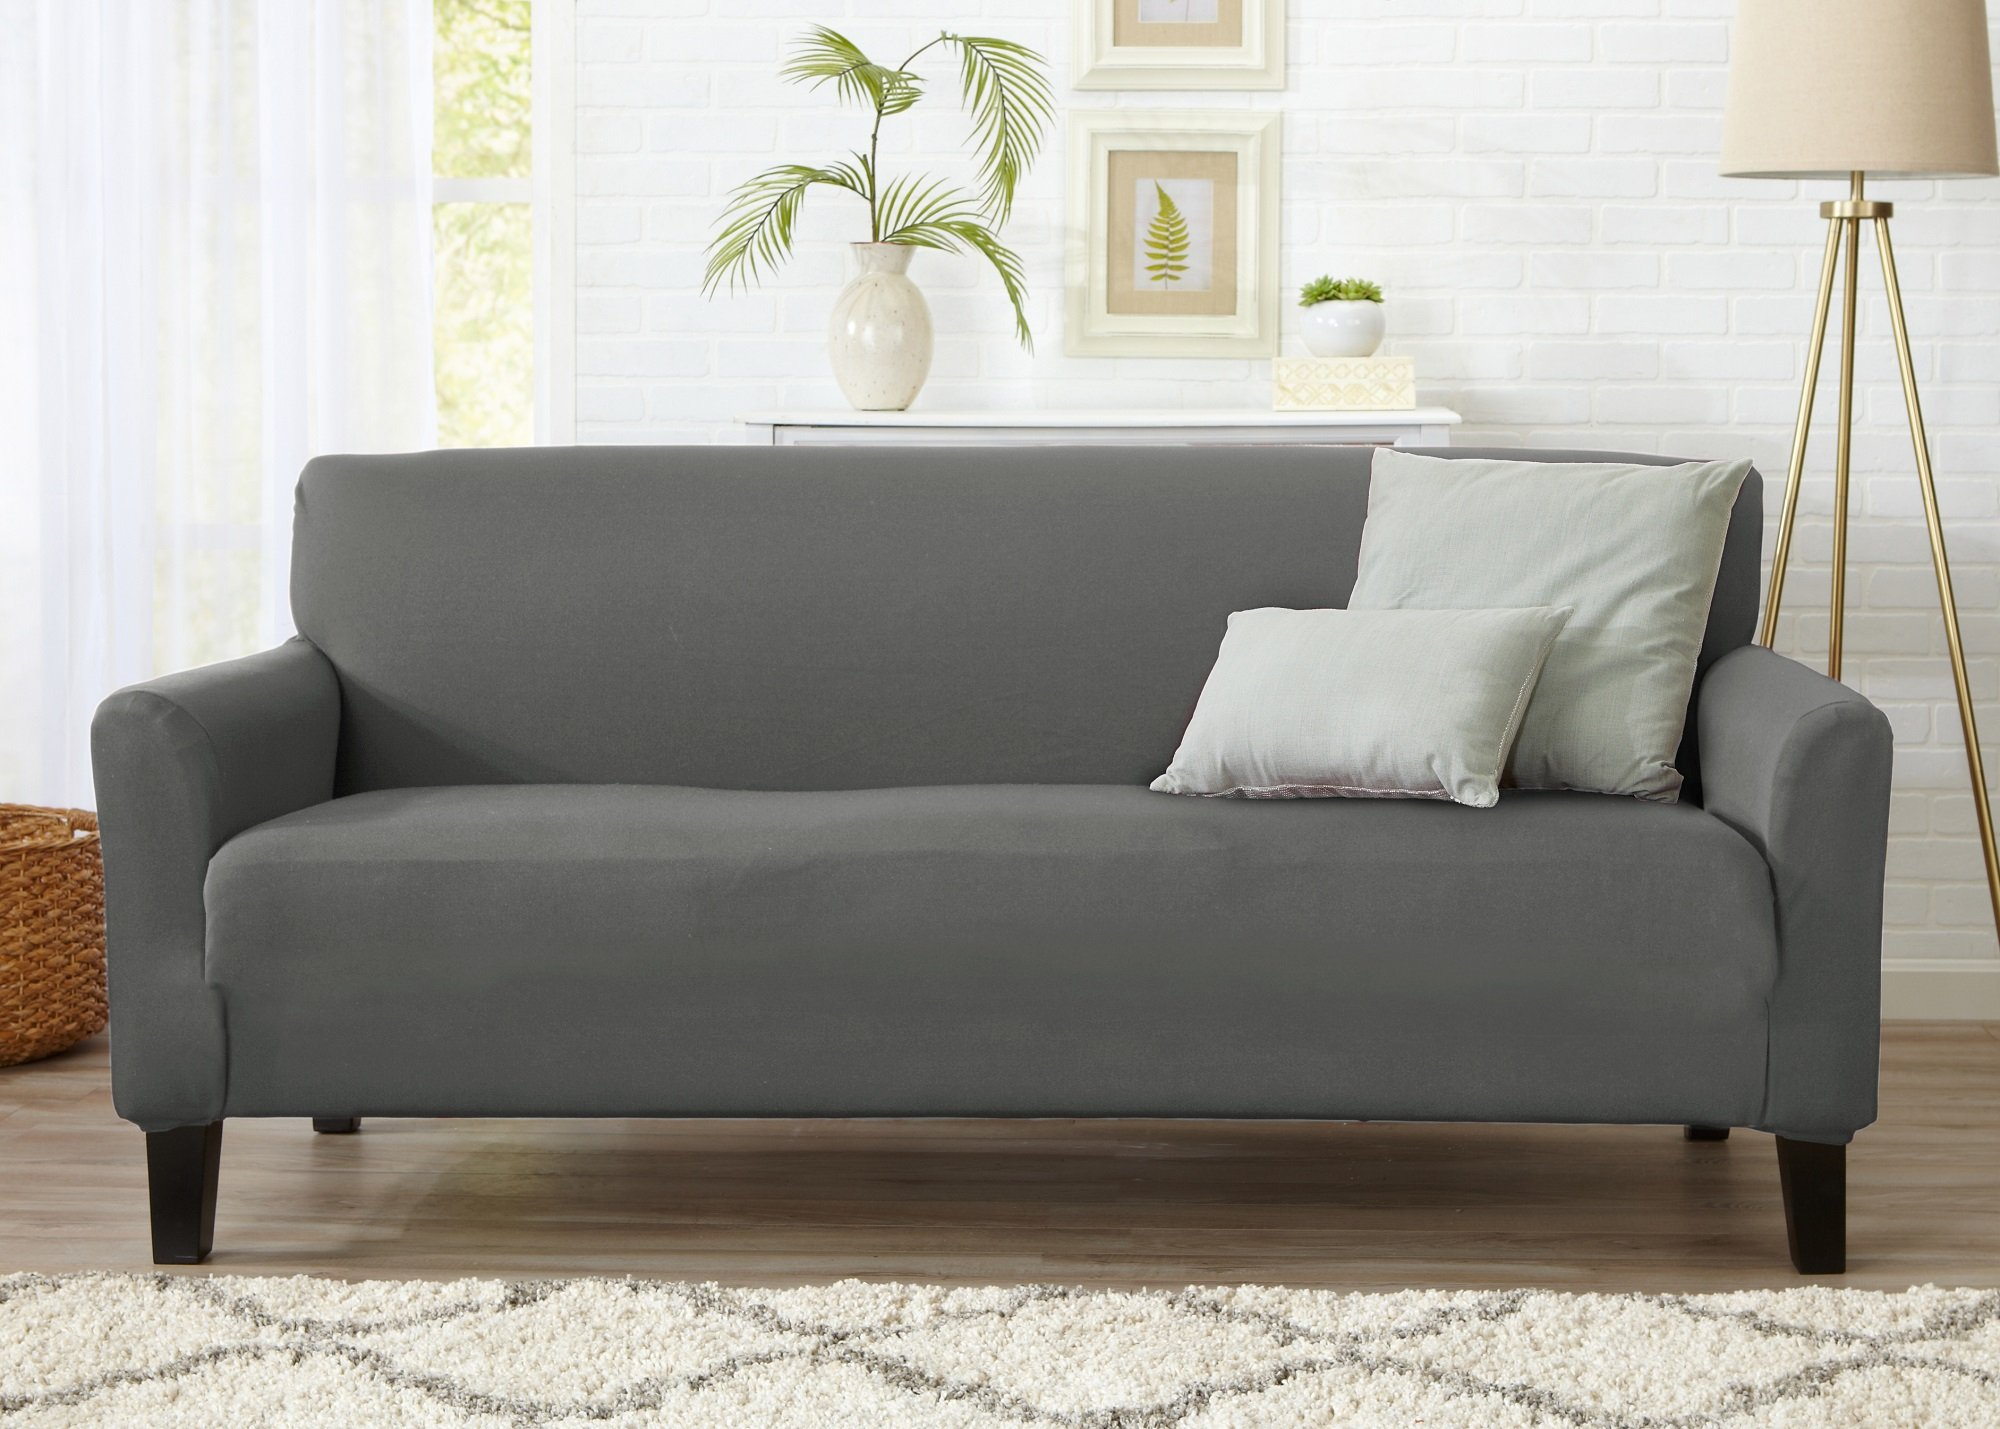 Home Fashion Designs Form Fit, Slip Resistant, Stylish Furniture Cover/Protector Featuring Lightweight Stretch Twill Fabric. Brenna Collection Strapless Slipcover. By Brand. (Sofa, Charcoal - Solid) by Home Fashion Designs